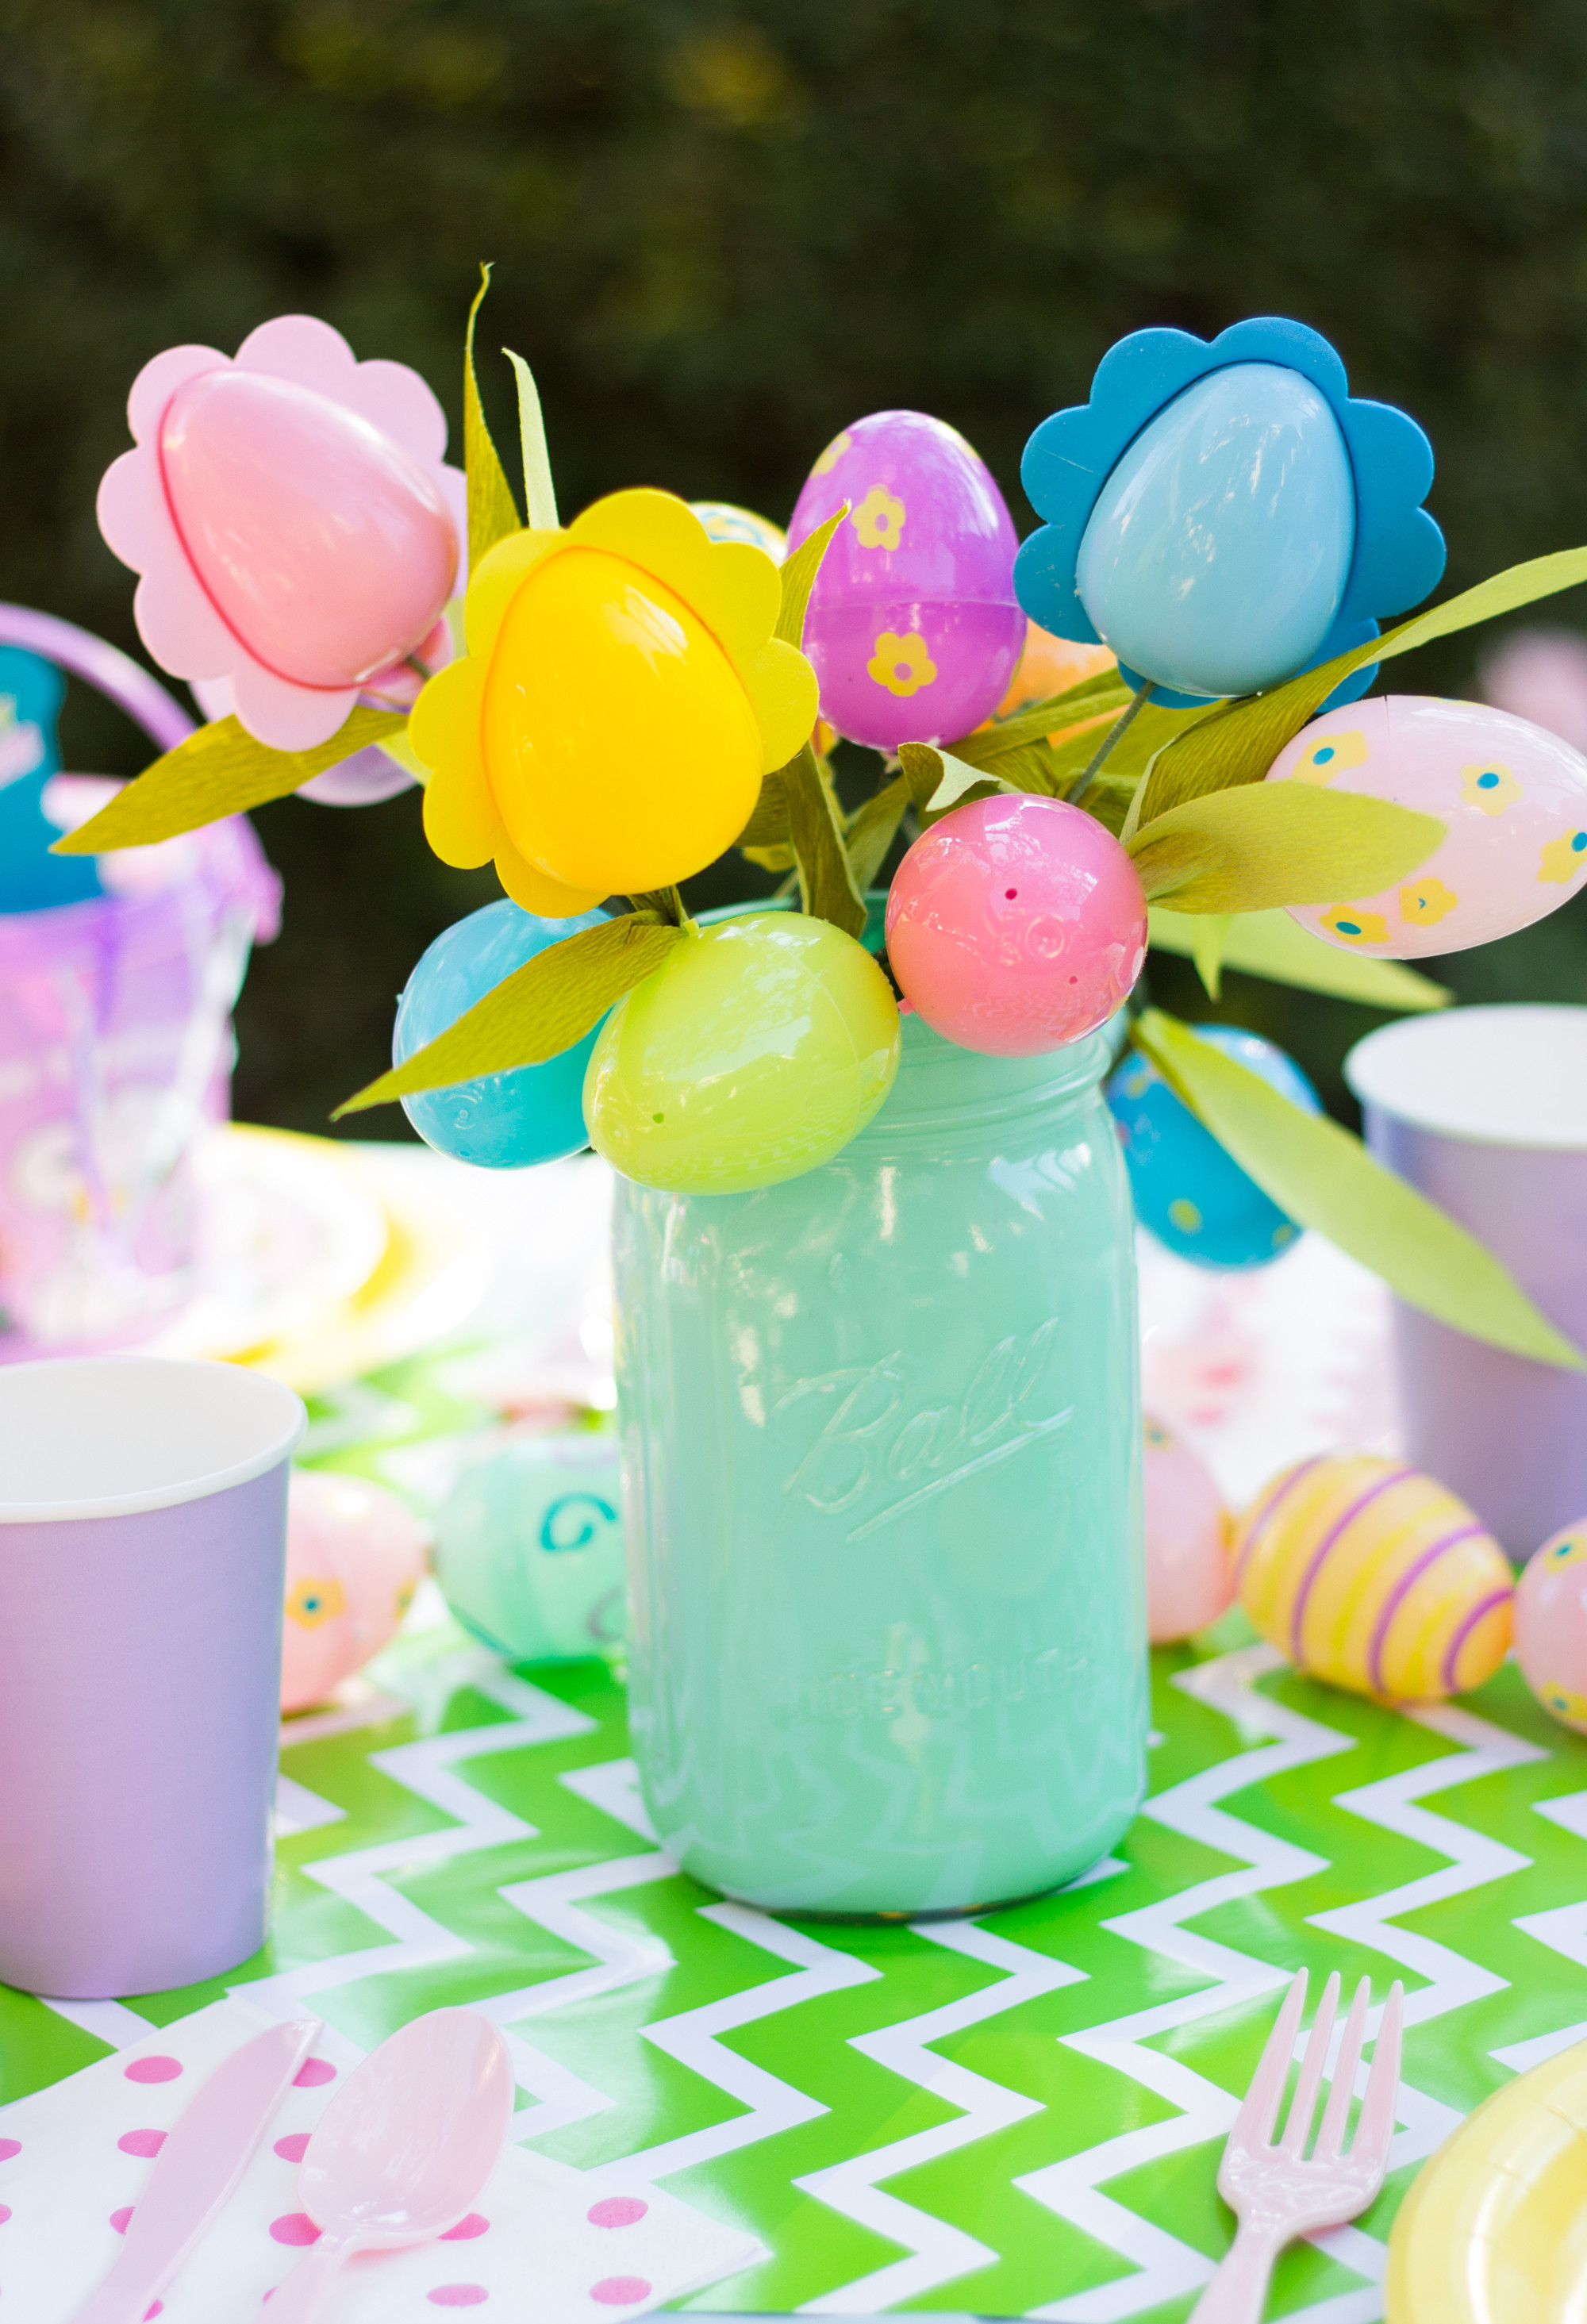 Easter Party Centerpiece Ideas  Peanuts Themed Easter Party Idea